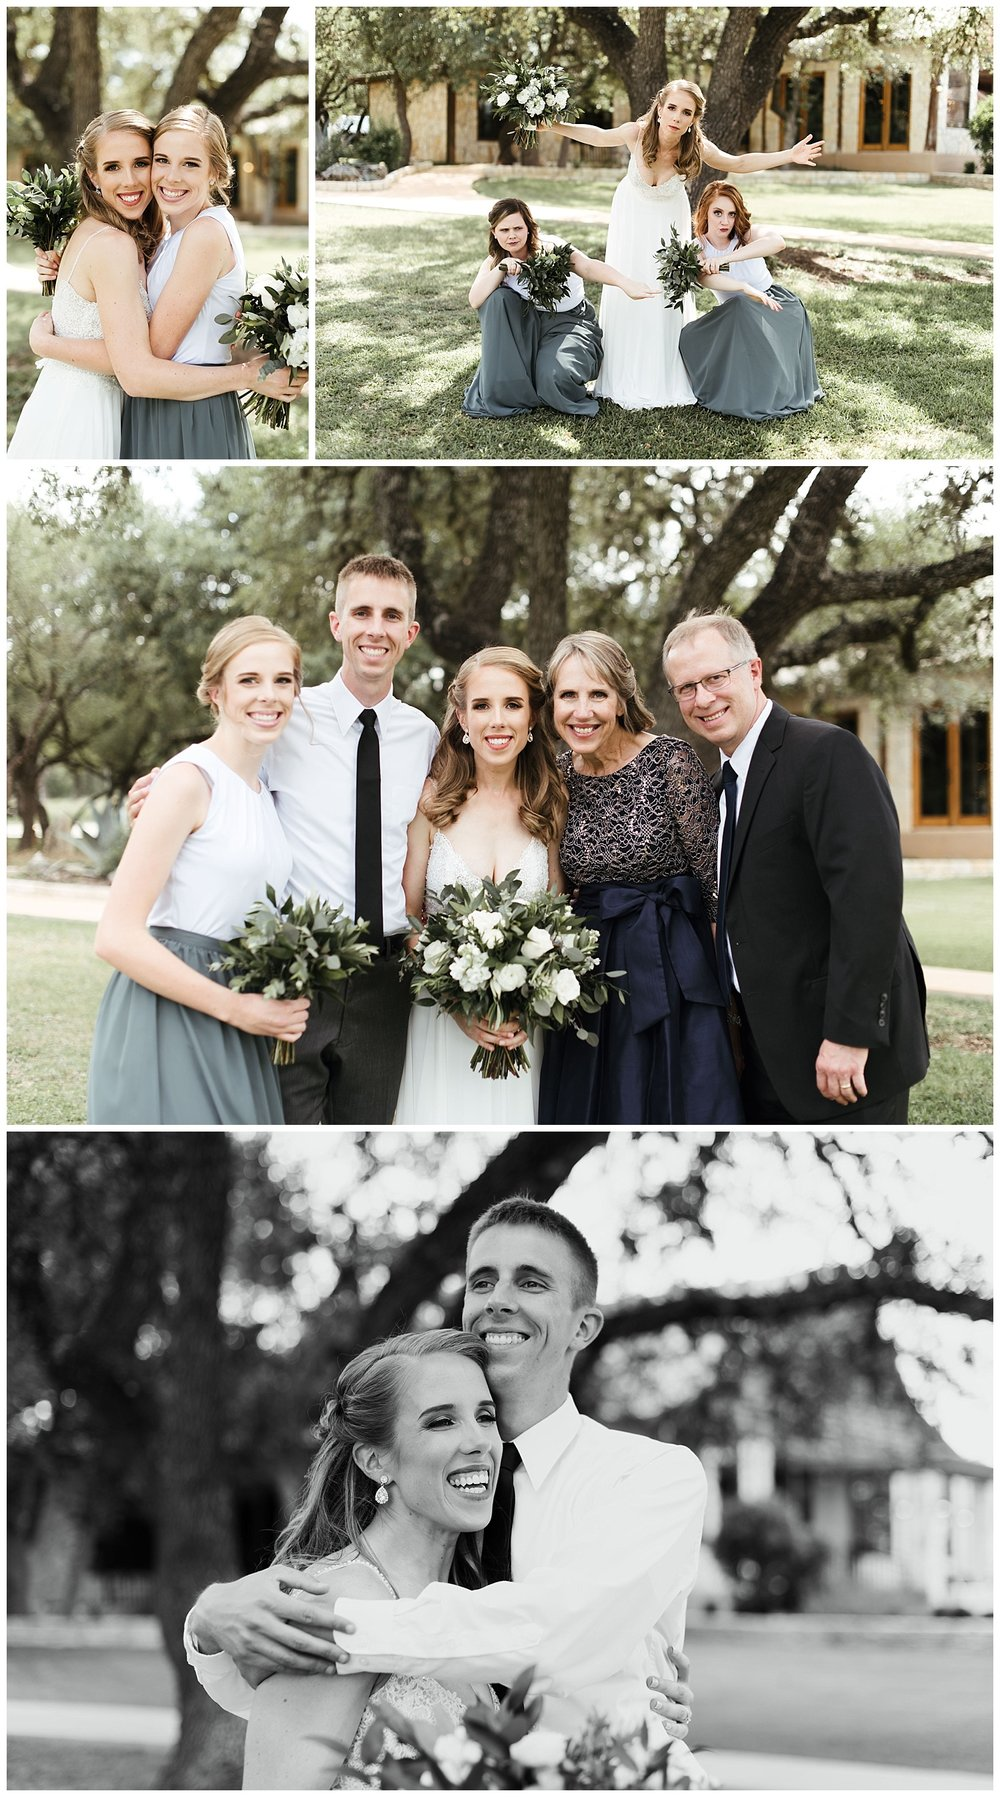 Dripping Springs, Texas Wedding | Memory Lane Event Center | Fort Worth Wedding Photographer | www.jordanmitchellphotography.com